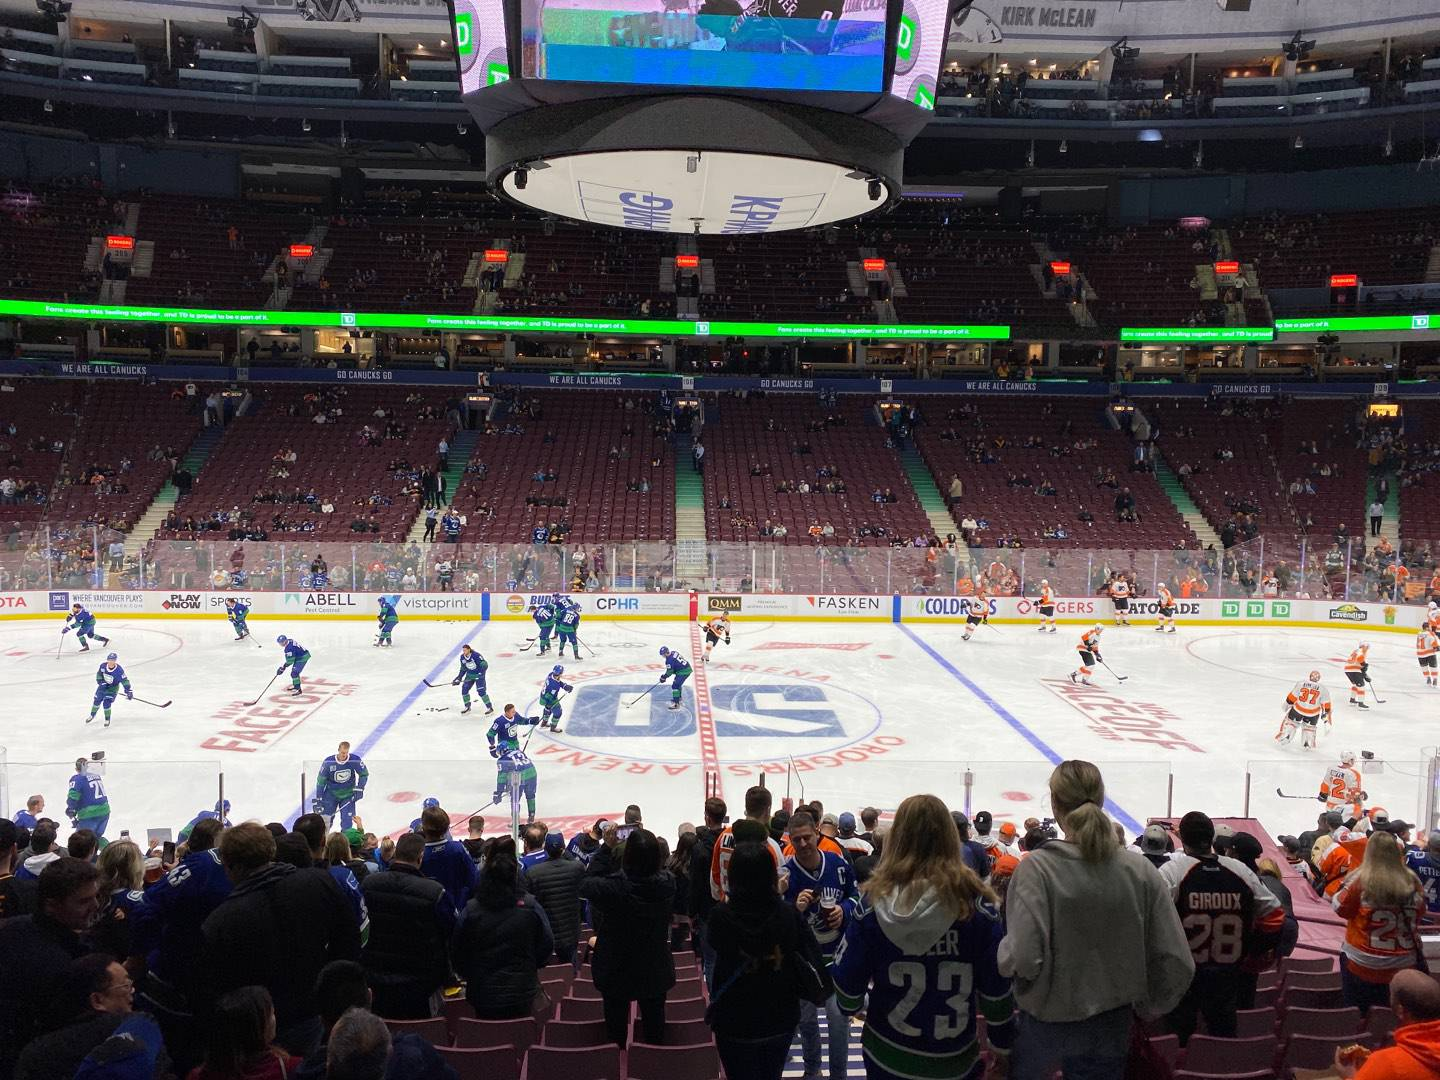 Rogers Arena Section 117 Row 18 Seat 101